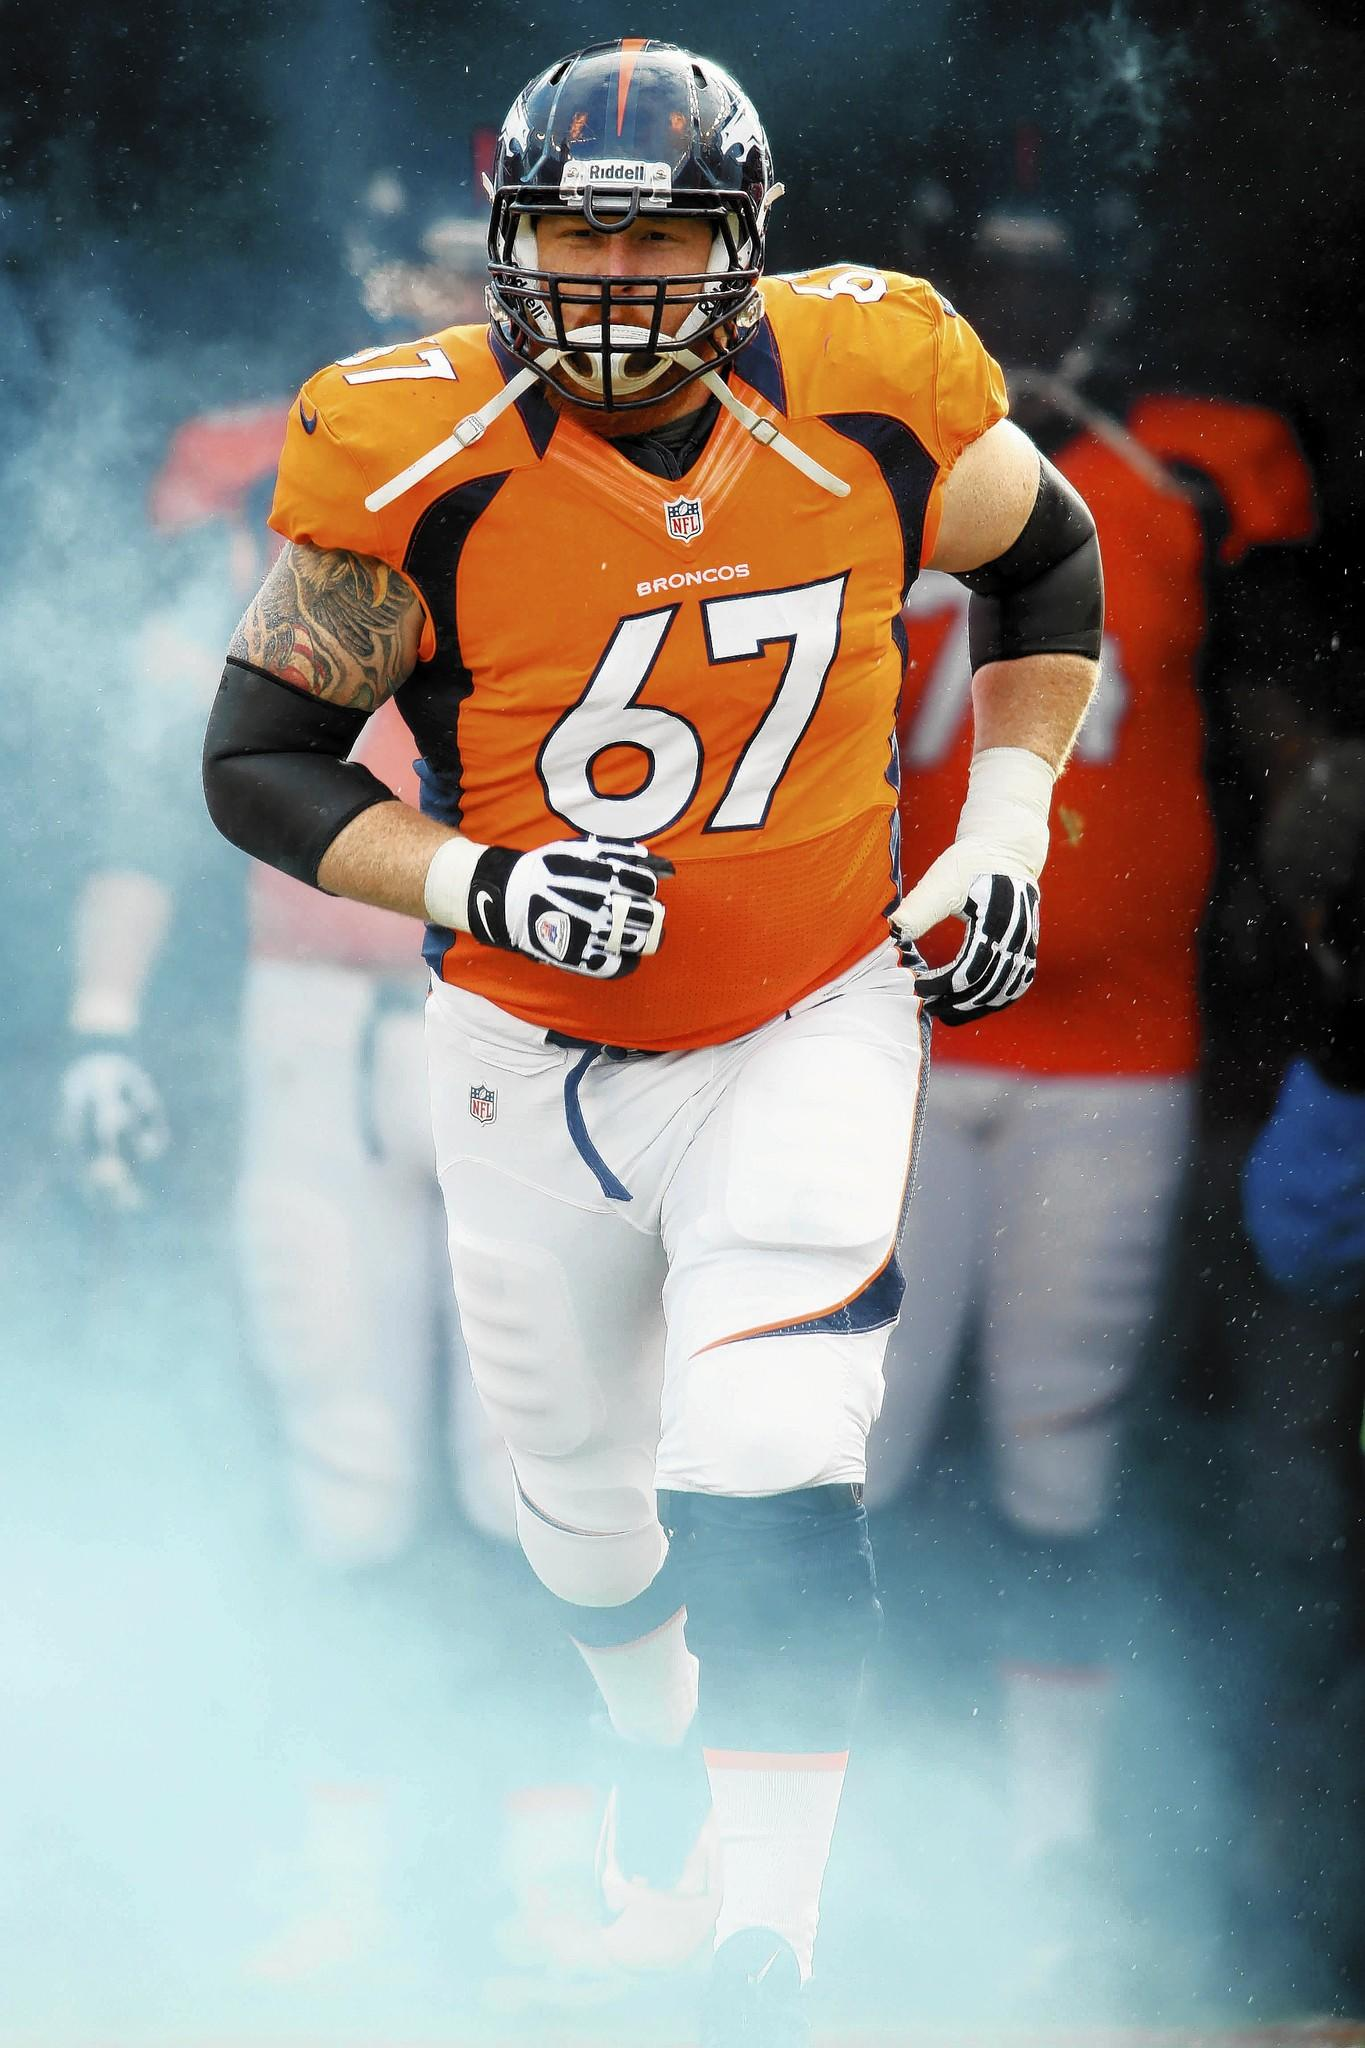 Jan 12, 2013; Denver, CO, USA; Denver Broncos center Dan Koppen (67) enters the field before the first quarter of the AFC divisional round playoff game against the Baltimore Ravens at Sports Authority Field.